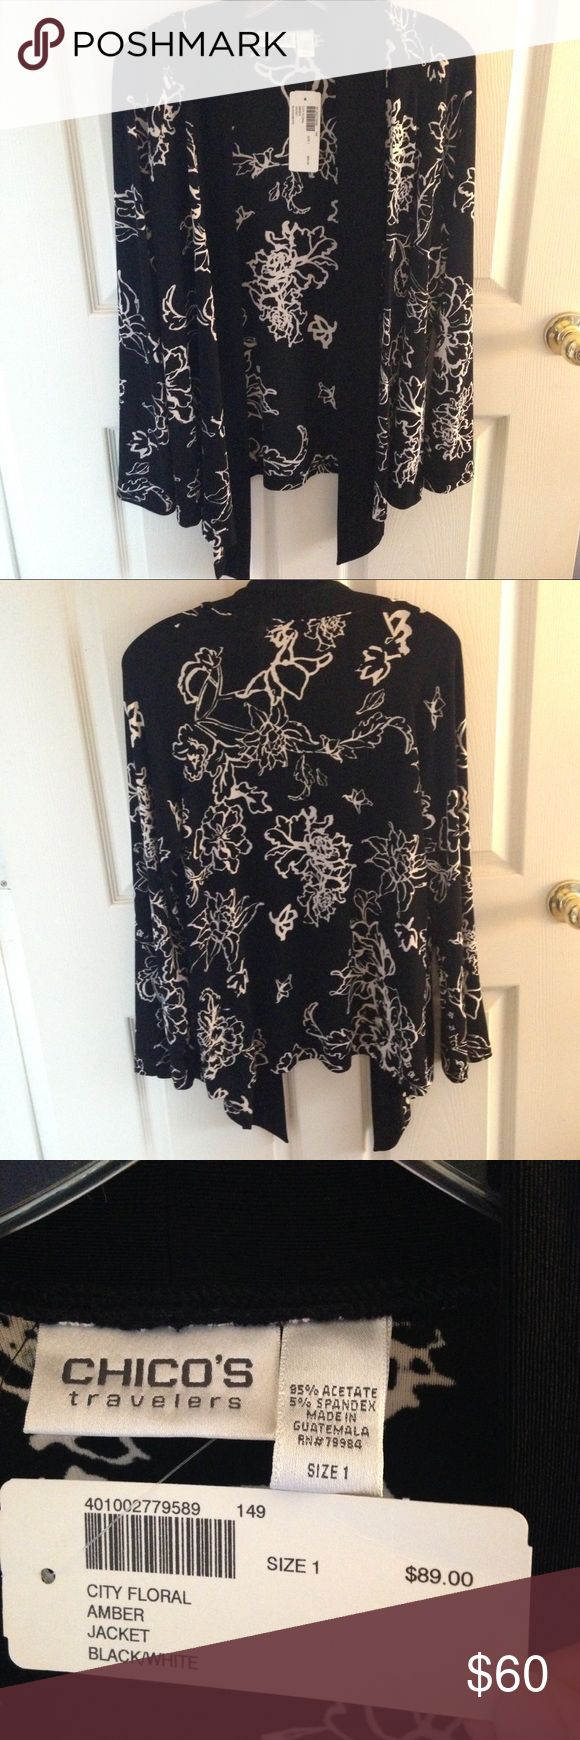 Chico's Travelers Cardigan, Size 1 - Med 💢NWT💢 This BRAND NEW W/ TAGS Chico's black & white floral cardigan in the Travelers line does not wrinkle!  Can get a lot of wear out of this at the office, out to dinner, and on vacation.  Chicos size 1 is equivalent to a size medium.  (Pet-free and Smoke-free home.)  🌹 Chico's Sweaters Cardigans